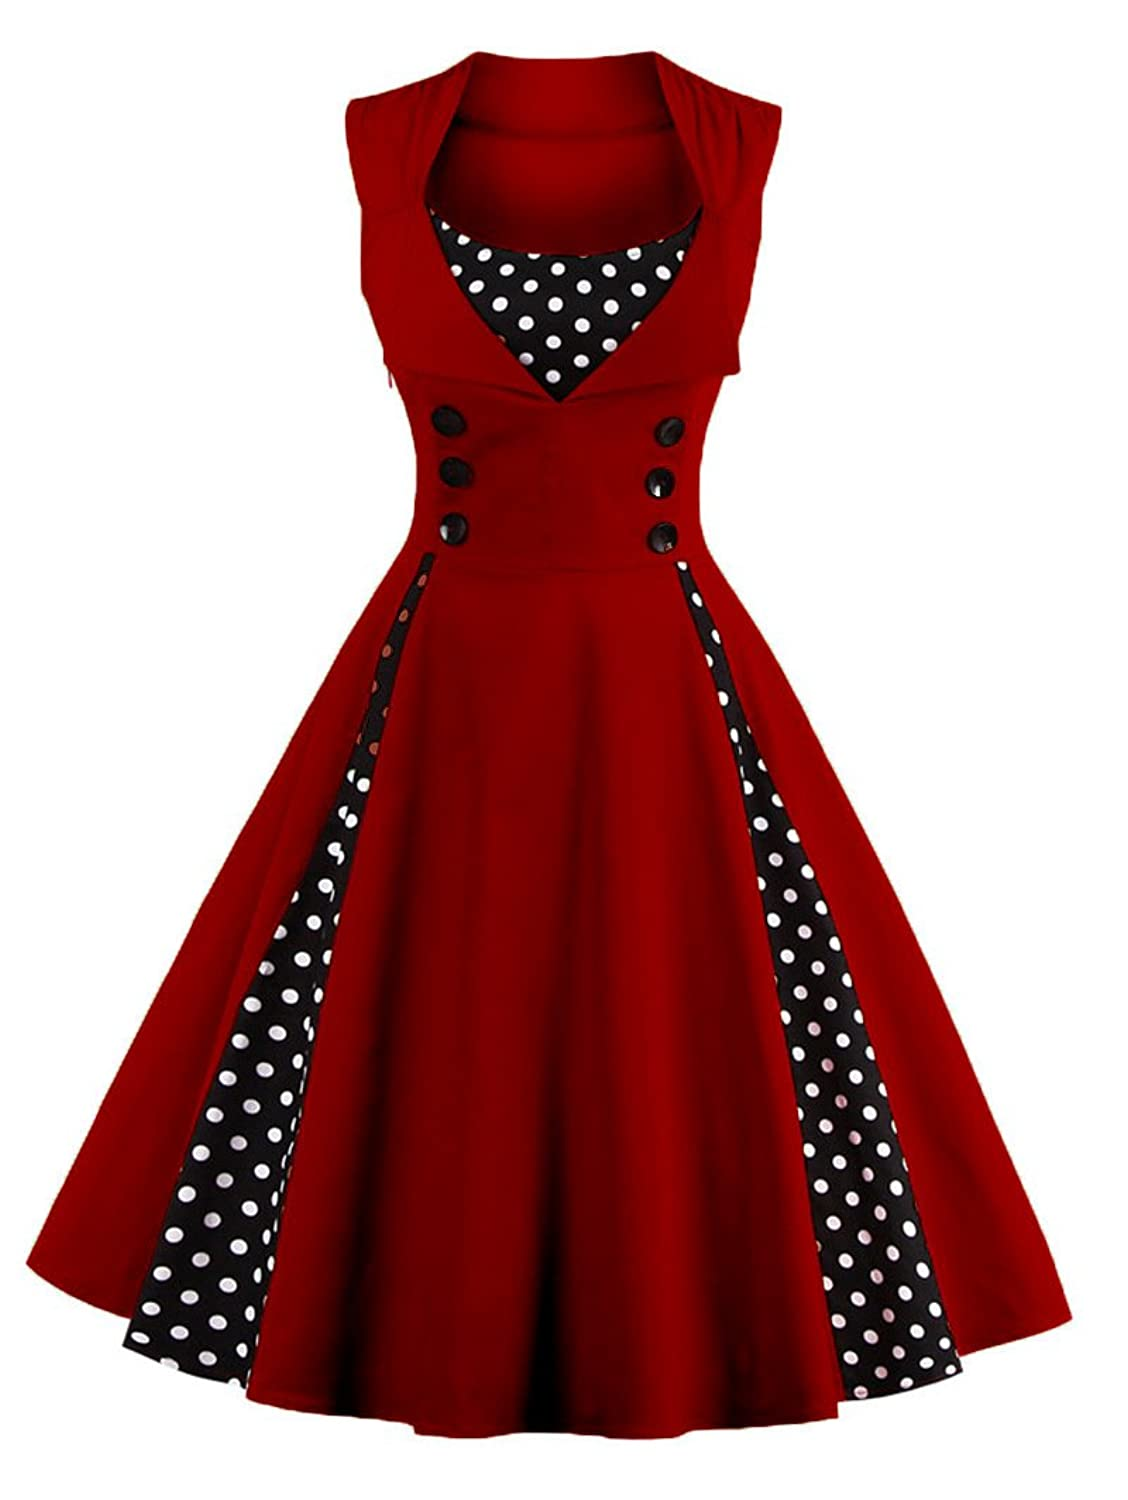 Vintage Polka Dot Dresses – Ditsy 50s Prints LUNAJANY Womens Rockabilly Vintage Polka Dot Pin up Swing Cocktail Party Dress $24.59 AT vintagedancer.com